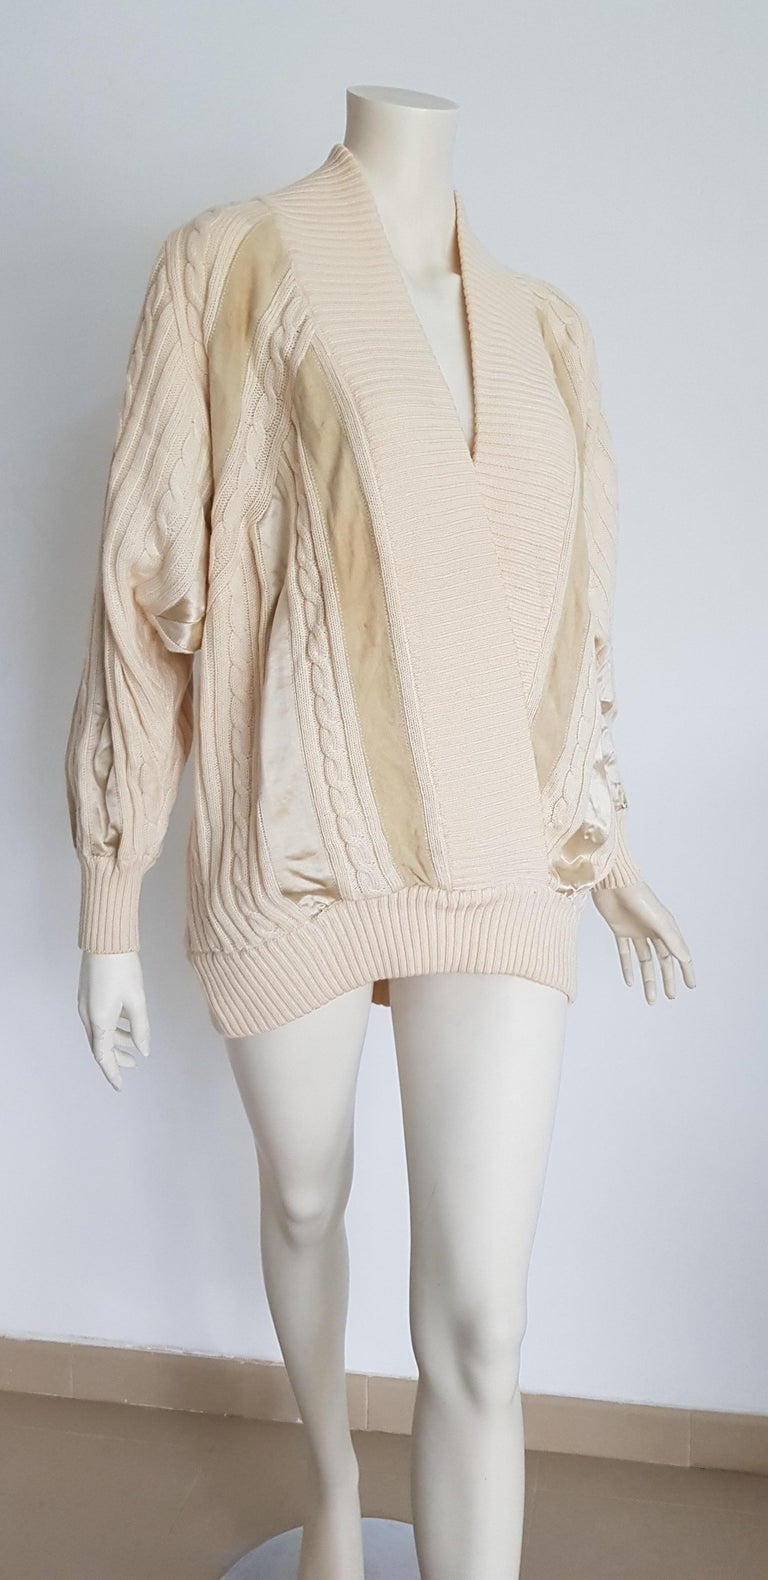 HERMES white cream wool collection sweater with silk suede strips - Unworn, New In New Condition For Sale In Somo (Santander), ES